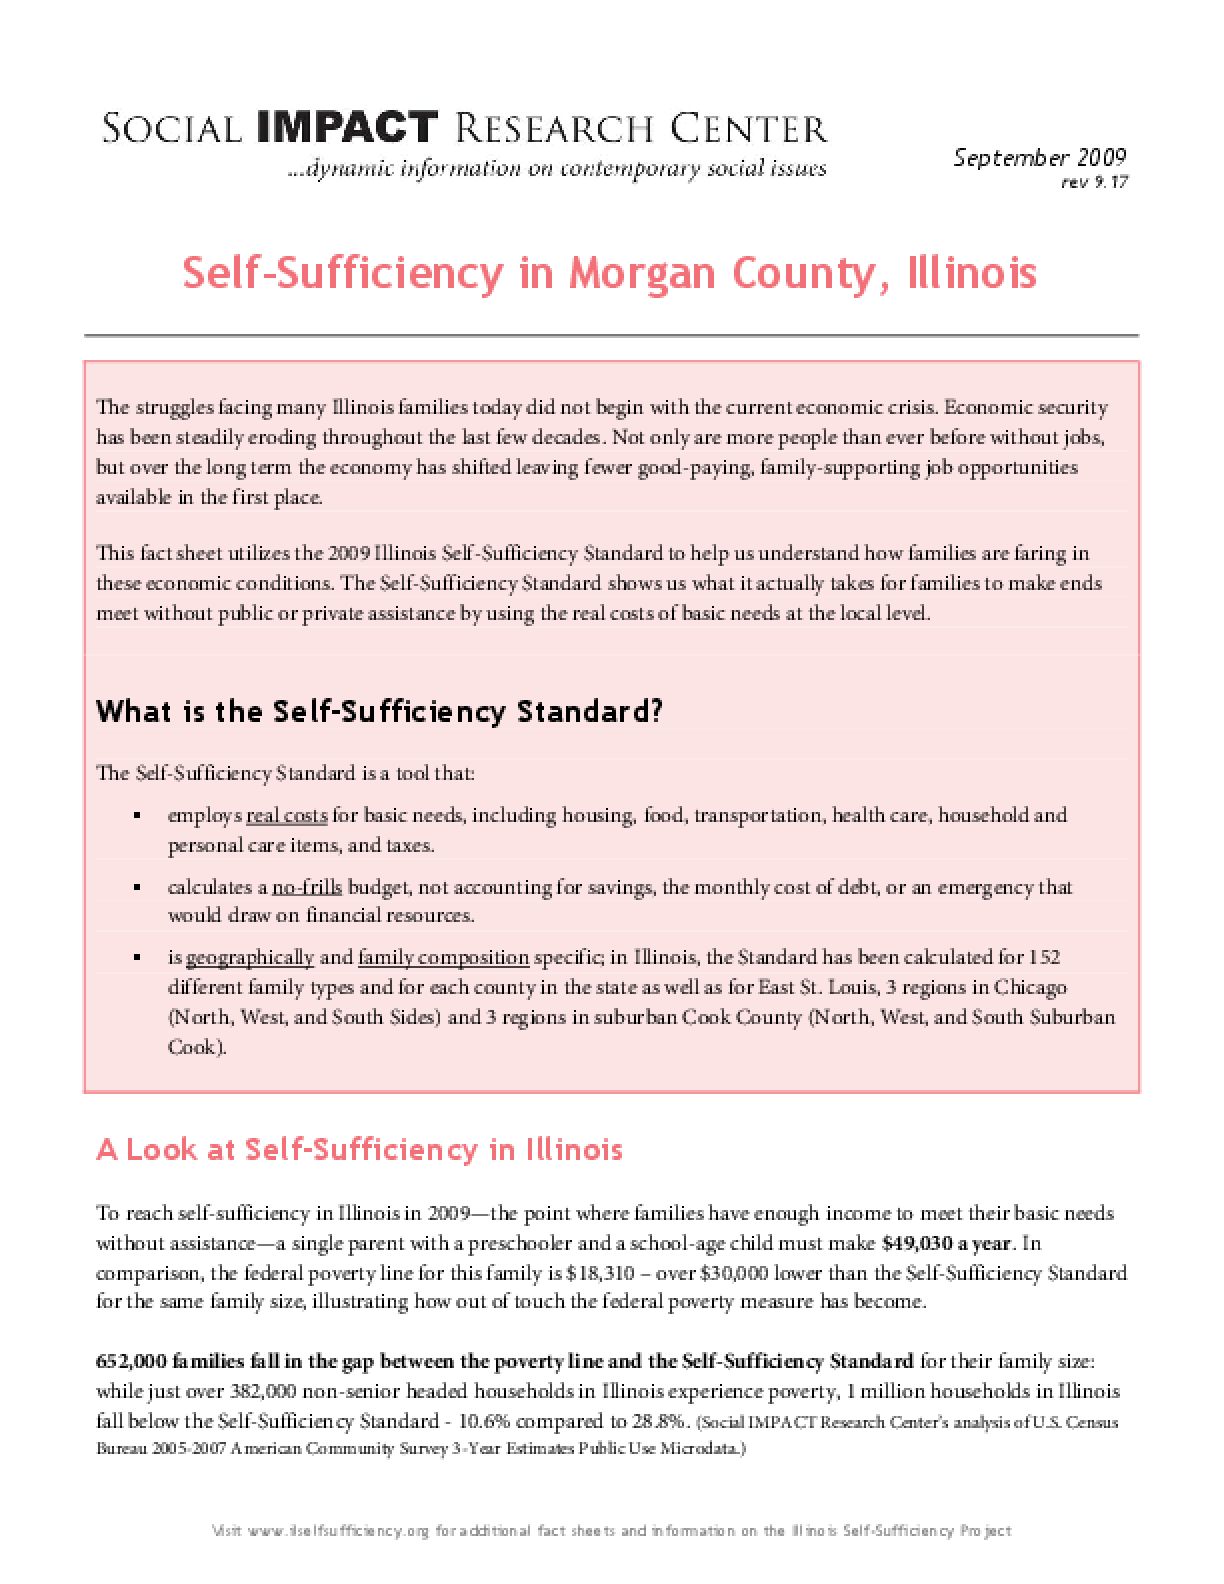 Self-Sufficiency in Morgan County, Illinois